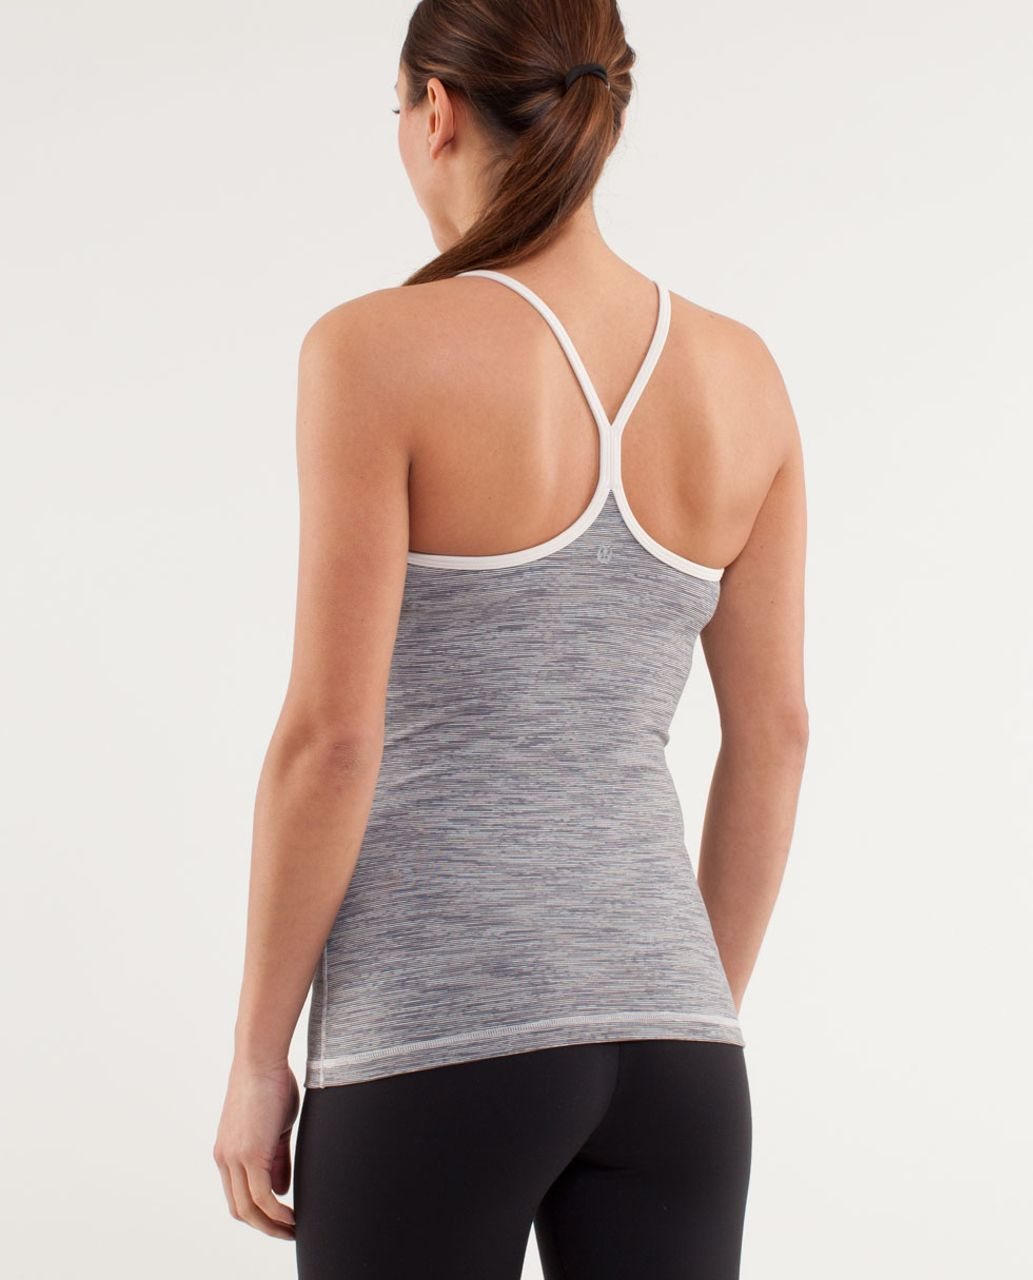 Lululemon Power Y Tank - Wee Are From Space Coal Fossil /  Dune